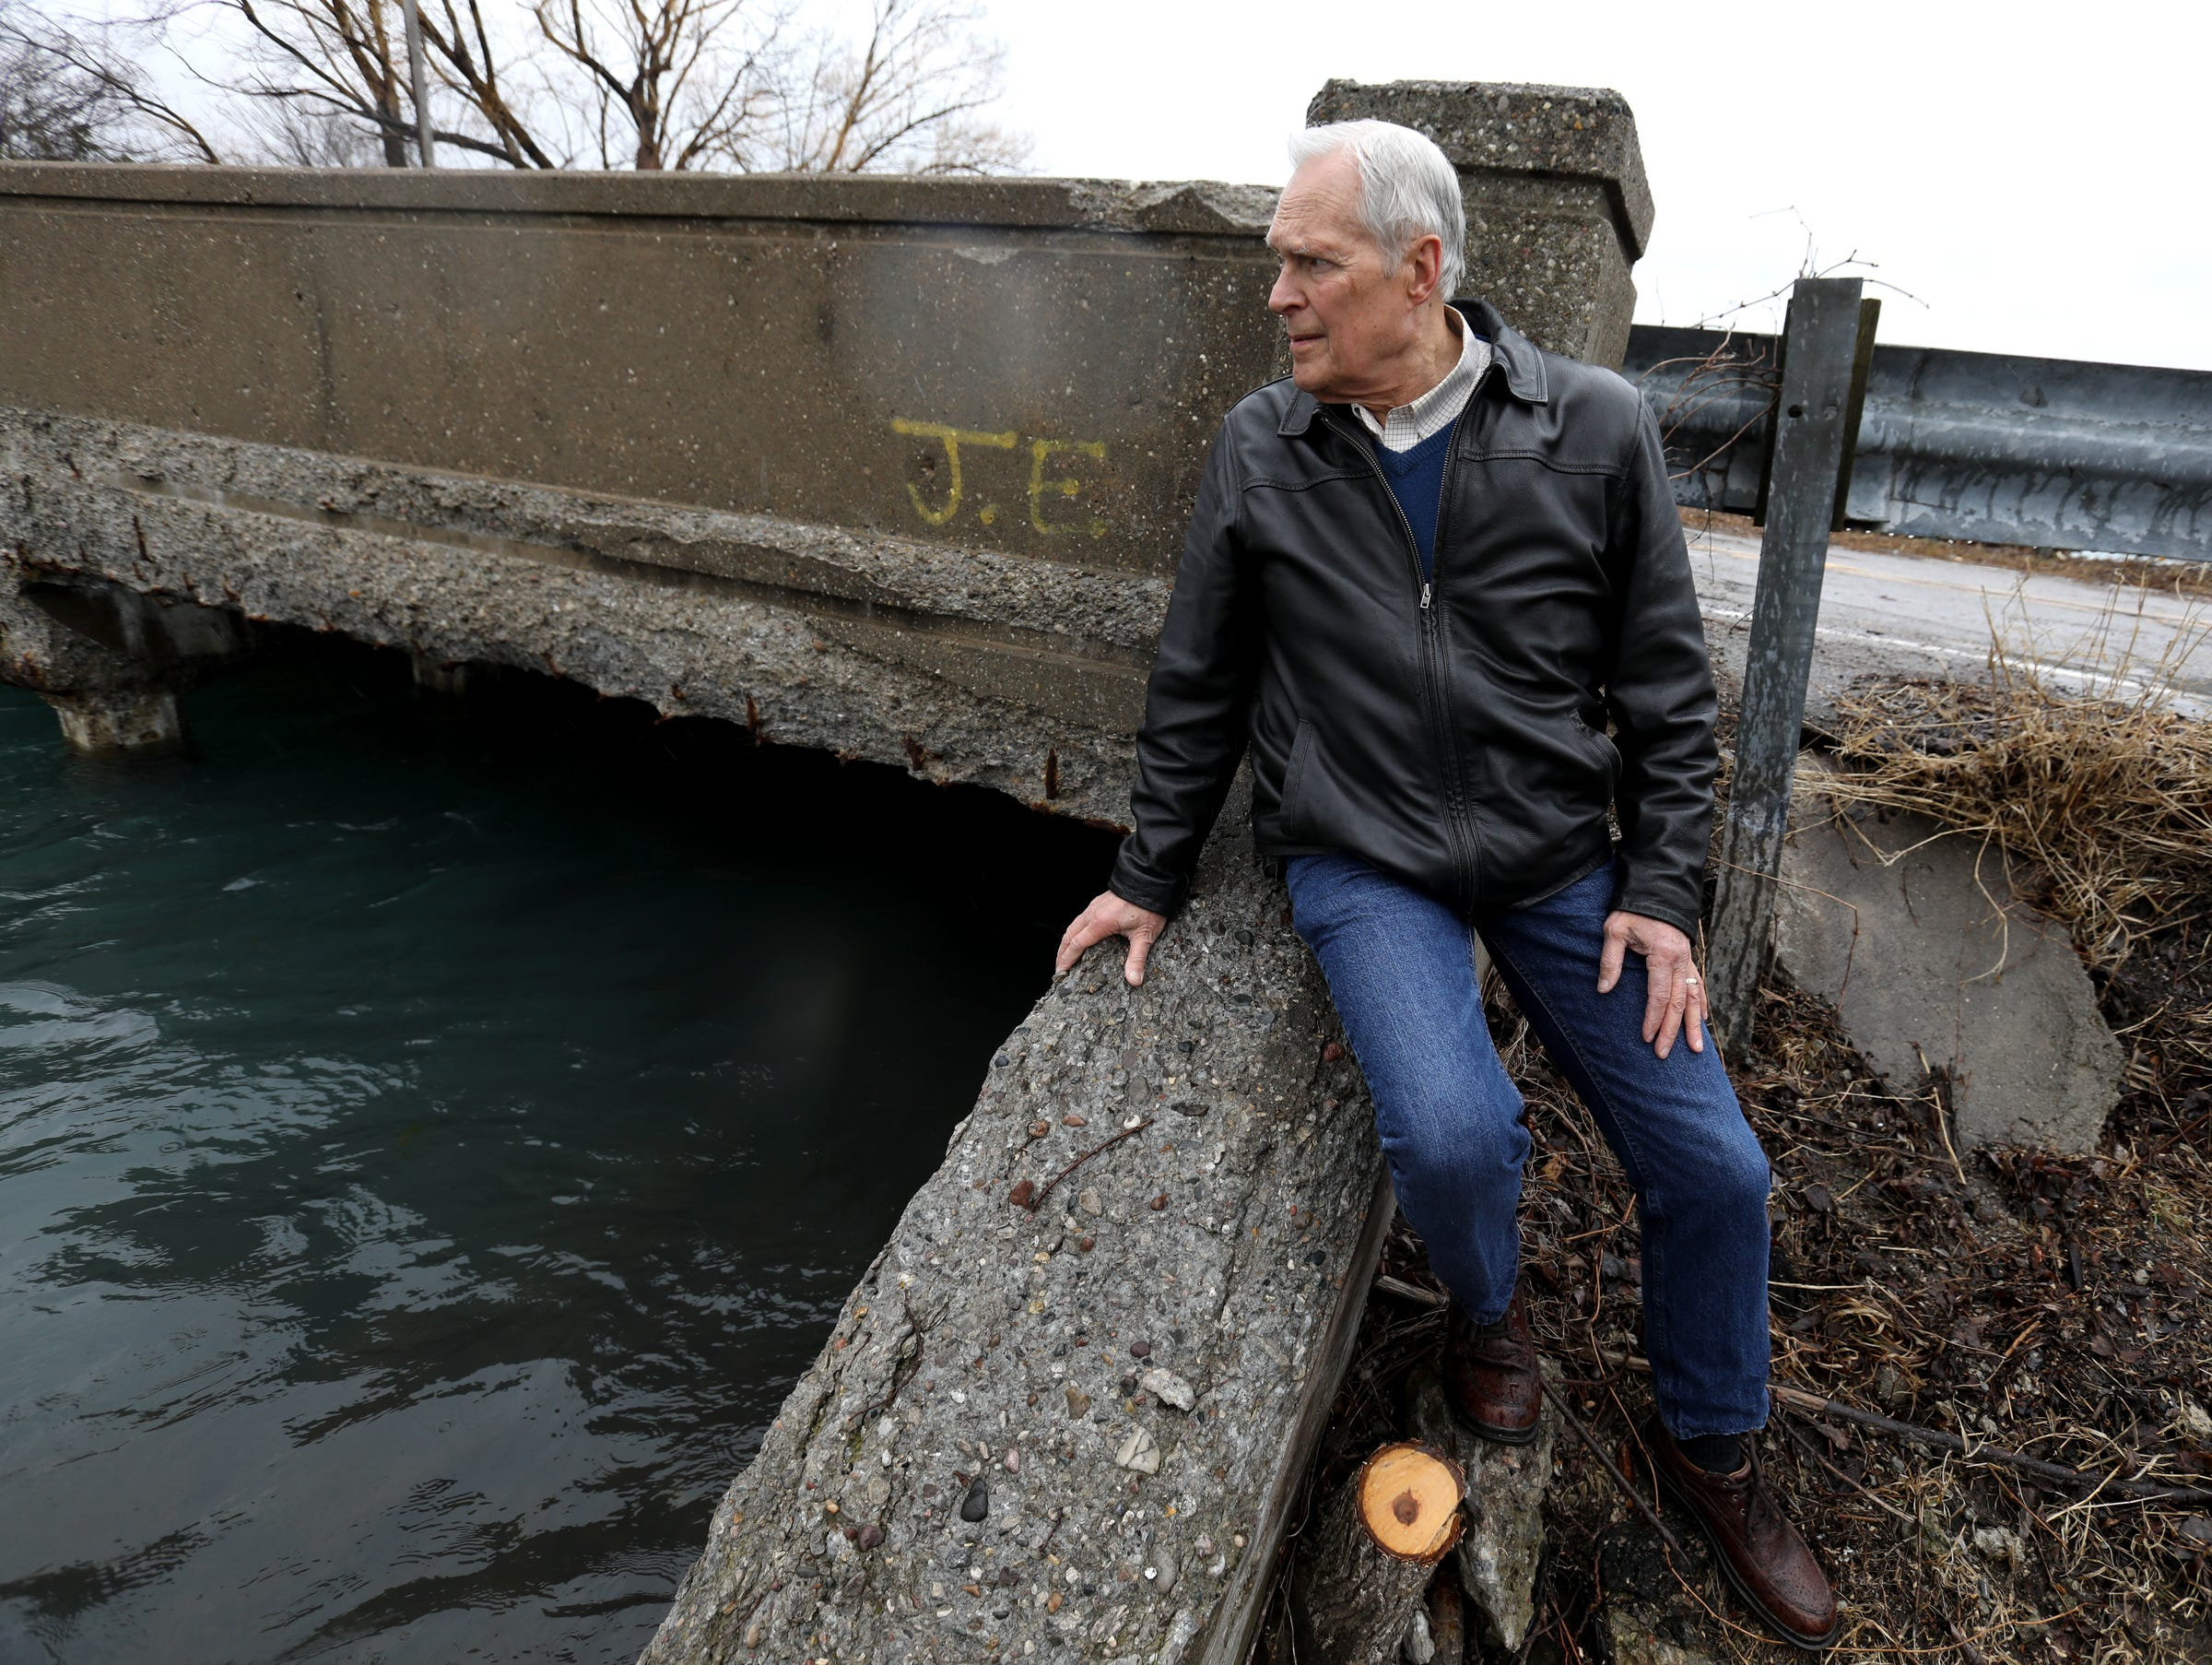 Bill Heil, 77, of Grosse Ile at the East River Road Bridge on a Saturday in March. The bridge is in serious condition.